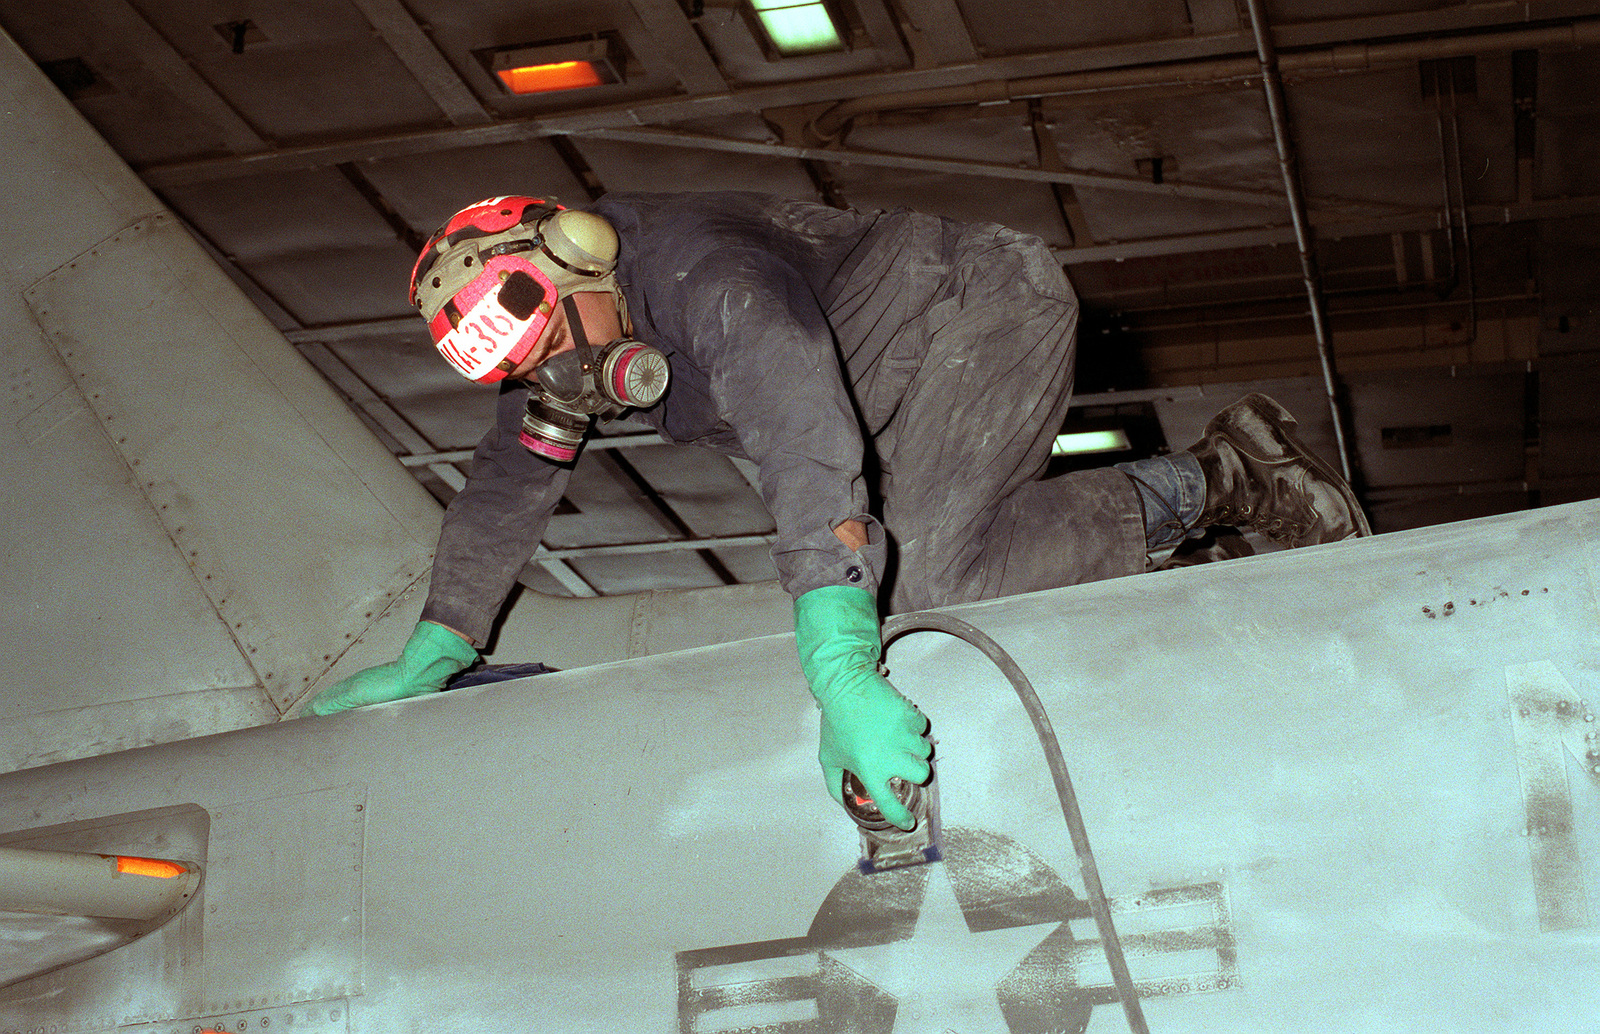 A member of Attack Squadron 36 (VA-36) sands part of the fuselage of an A-6E Intruder aircraft on the nuclear-powered aircraft carrier USS THEODORE ROOSEVELT (CVN-71) during Operation Deny Flight